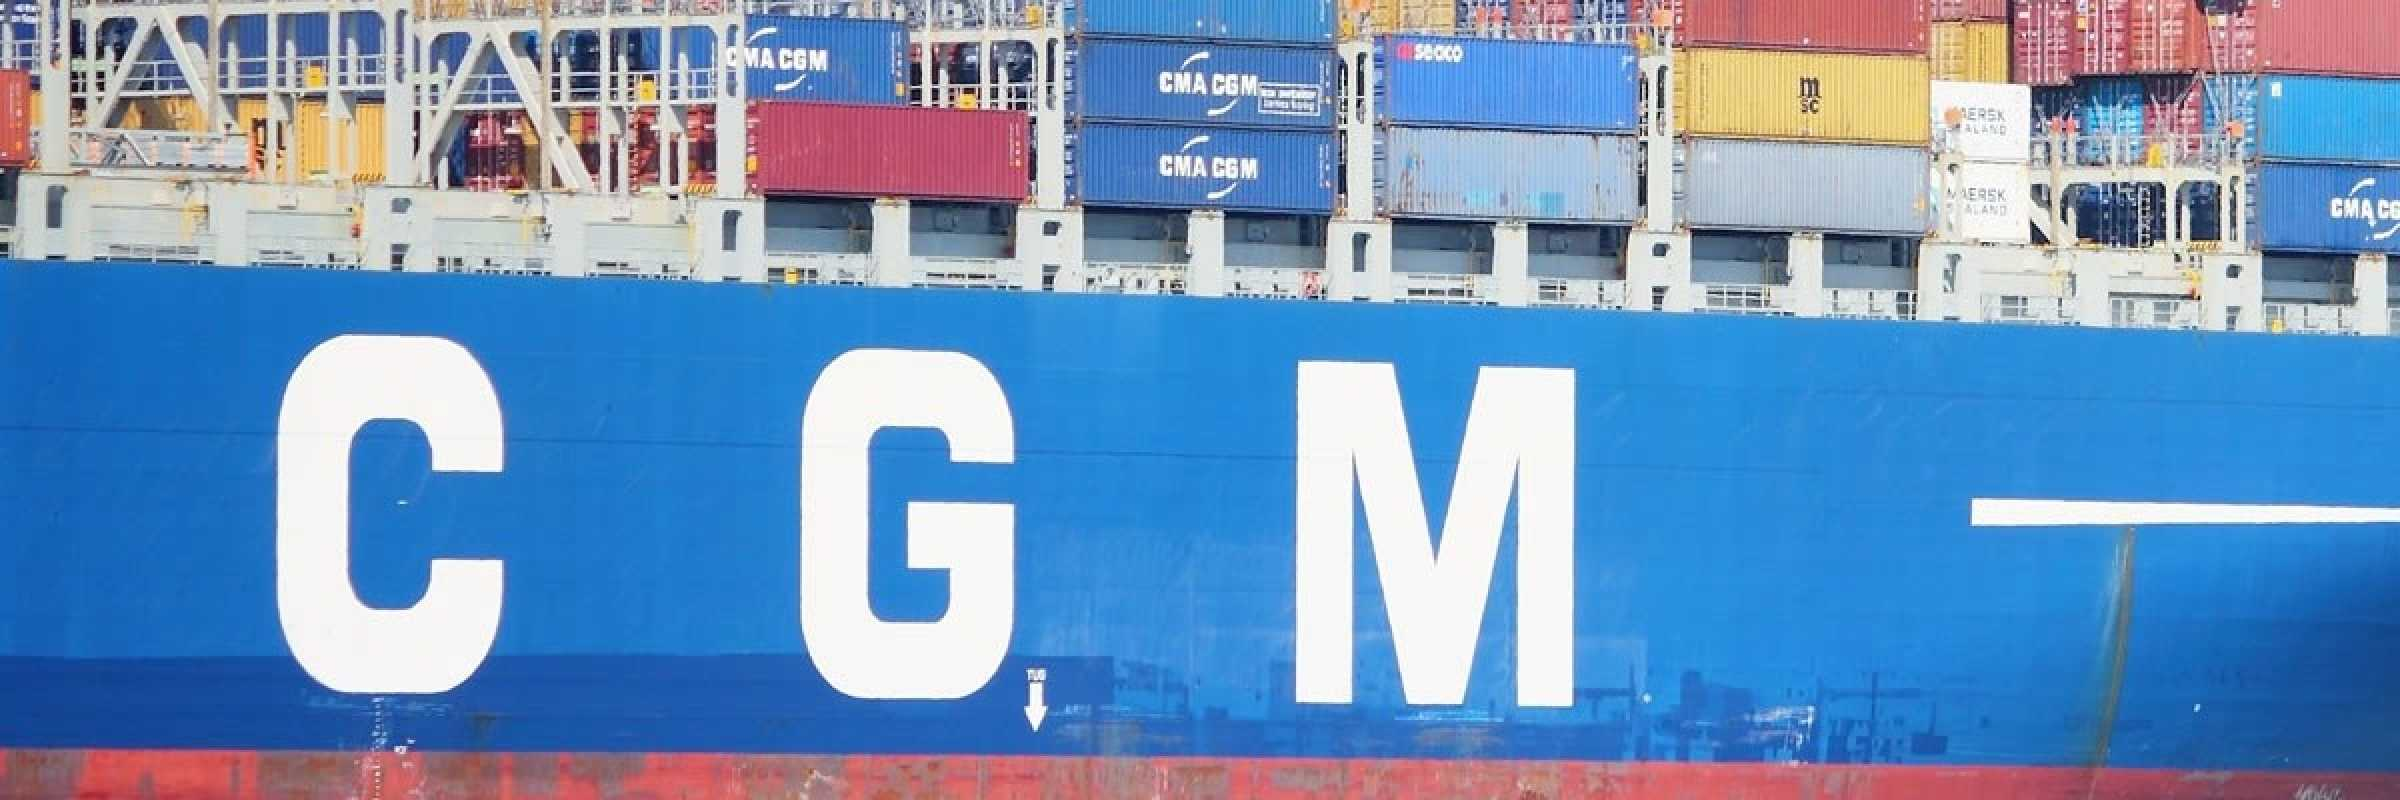 CMA CGM newbuildings order suggests $20m saving for scrubbers over LNG